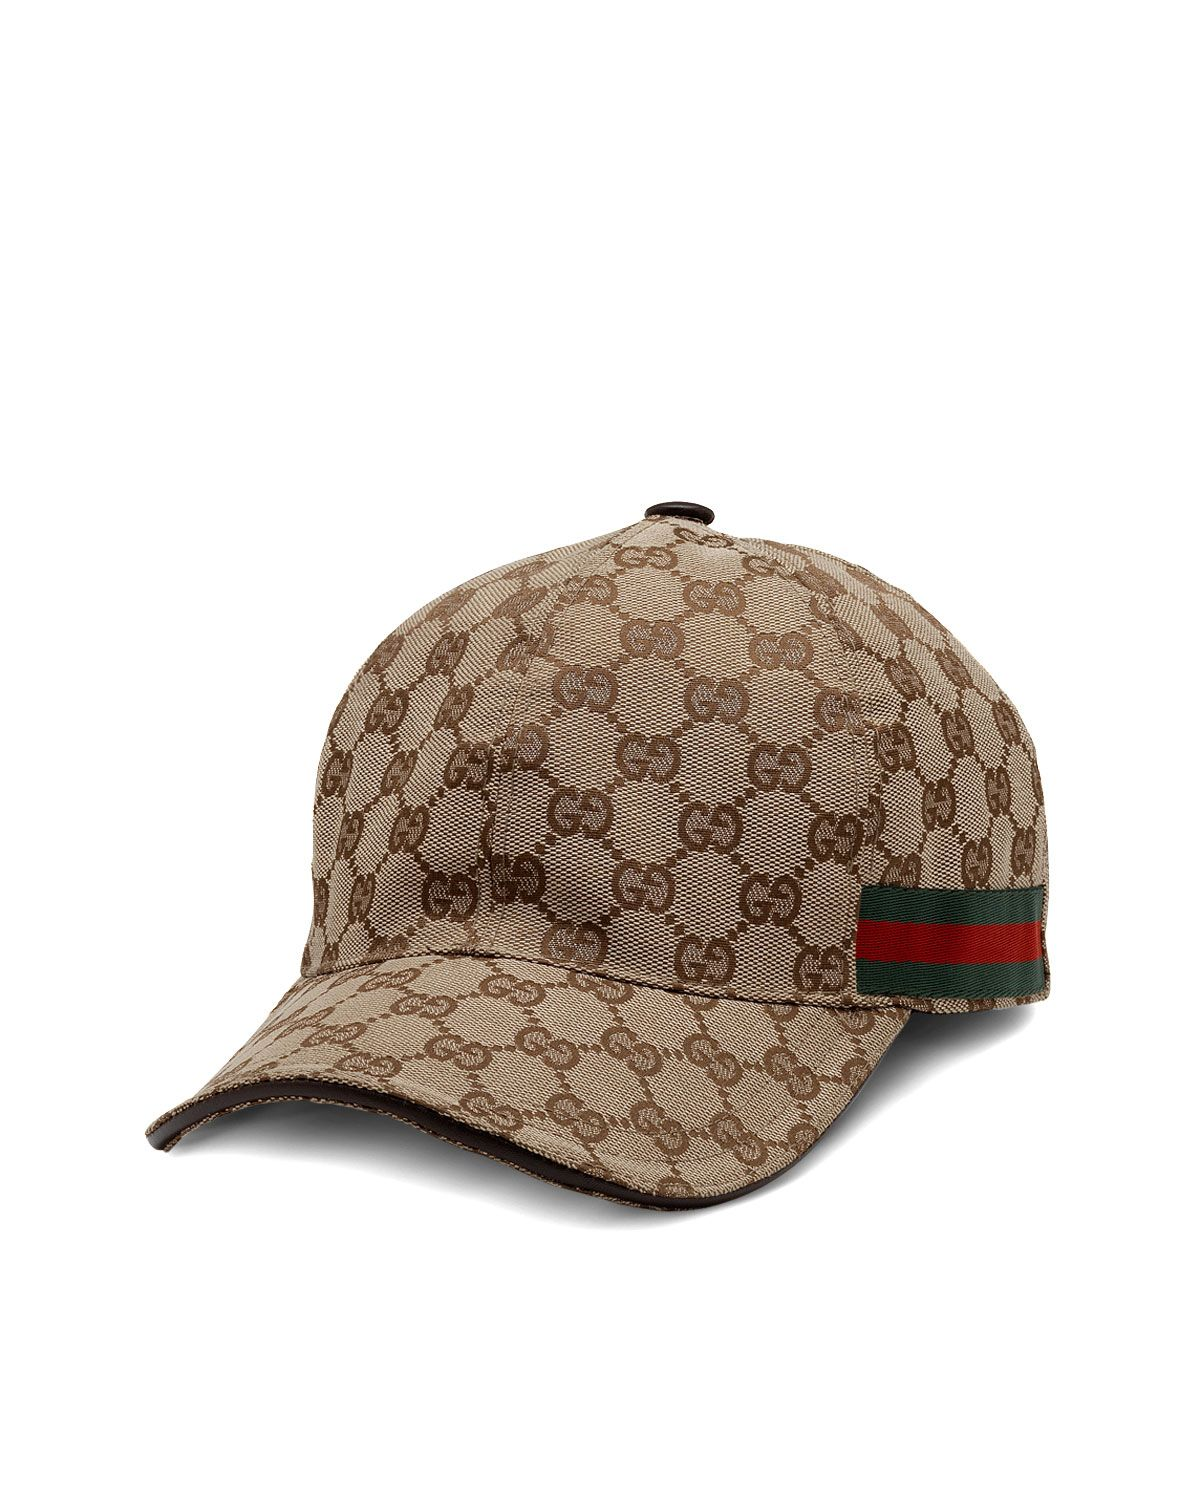 14550dd6 Gucci Canvas Baseball Hat, Men's, Size: XL, Beige | *Clothing ...